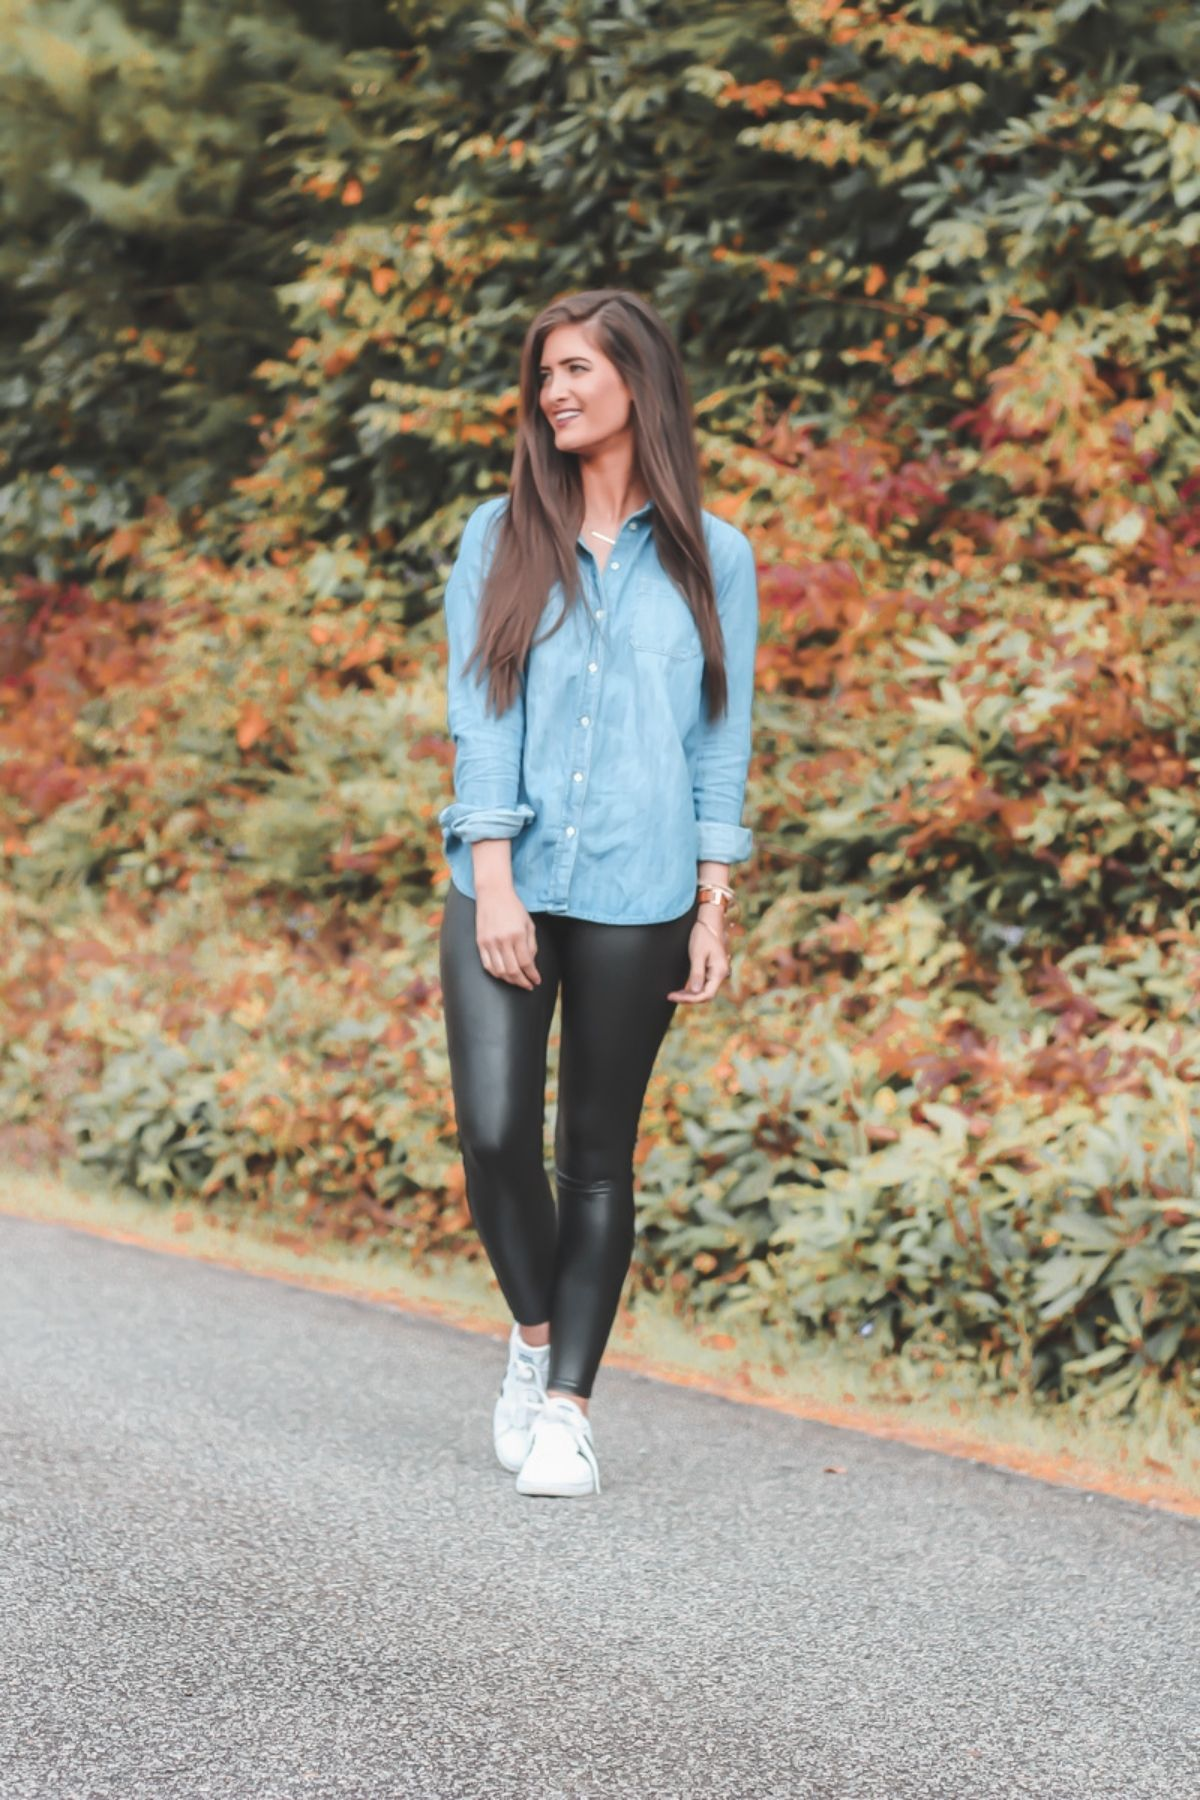 wear leather leggings with button down shirt